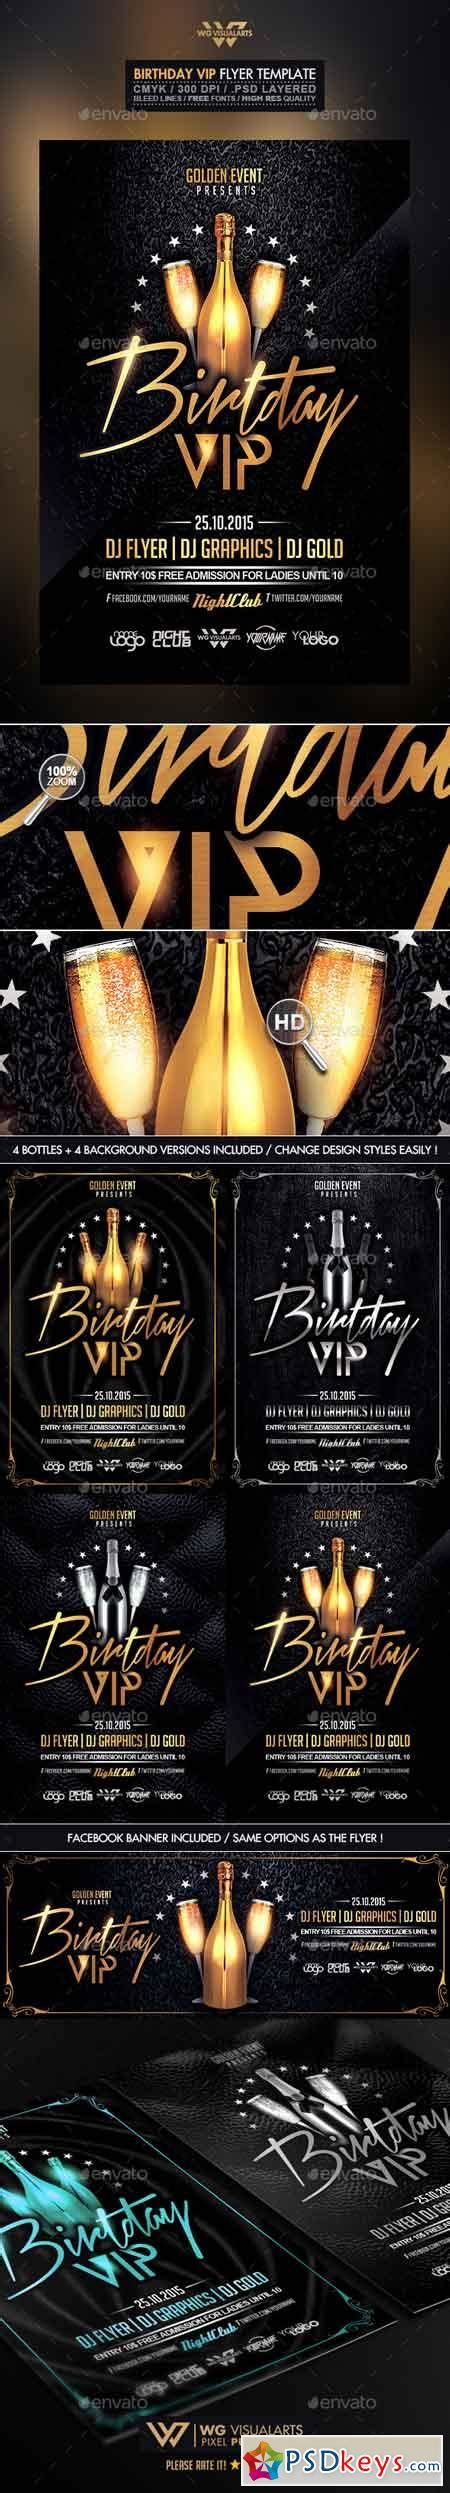 template flyer vip birthday vip flyer template 10480842 187 free download